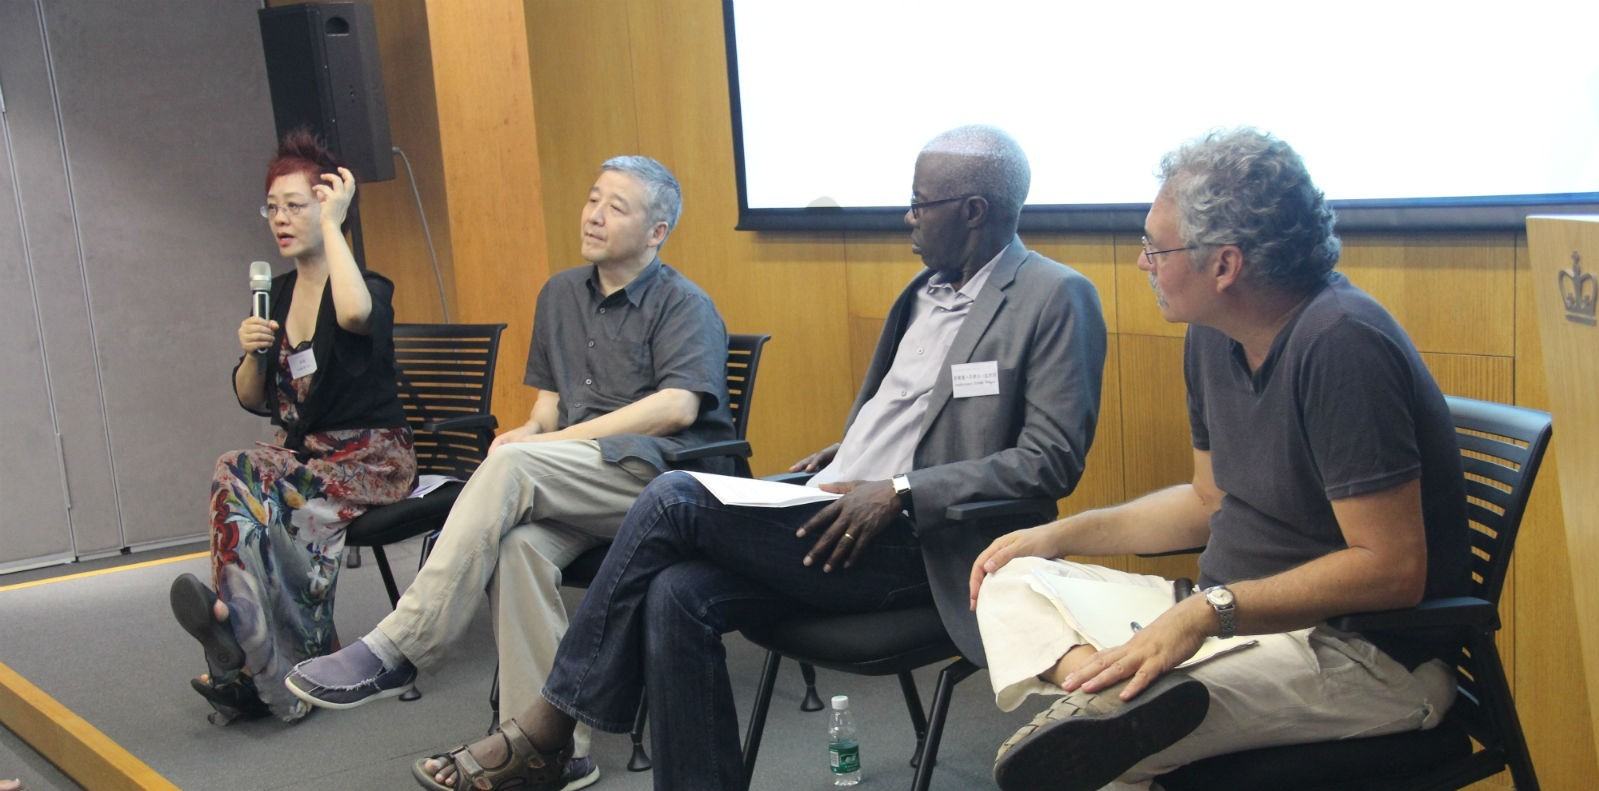 Professor Lydia H. Liu and ICLS faculty lead discussions on Bandung spirit and reflections on Afro-Asian solidarity